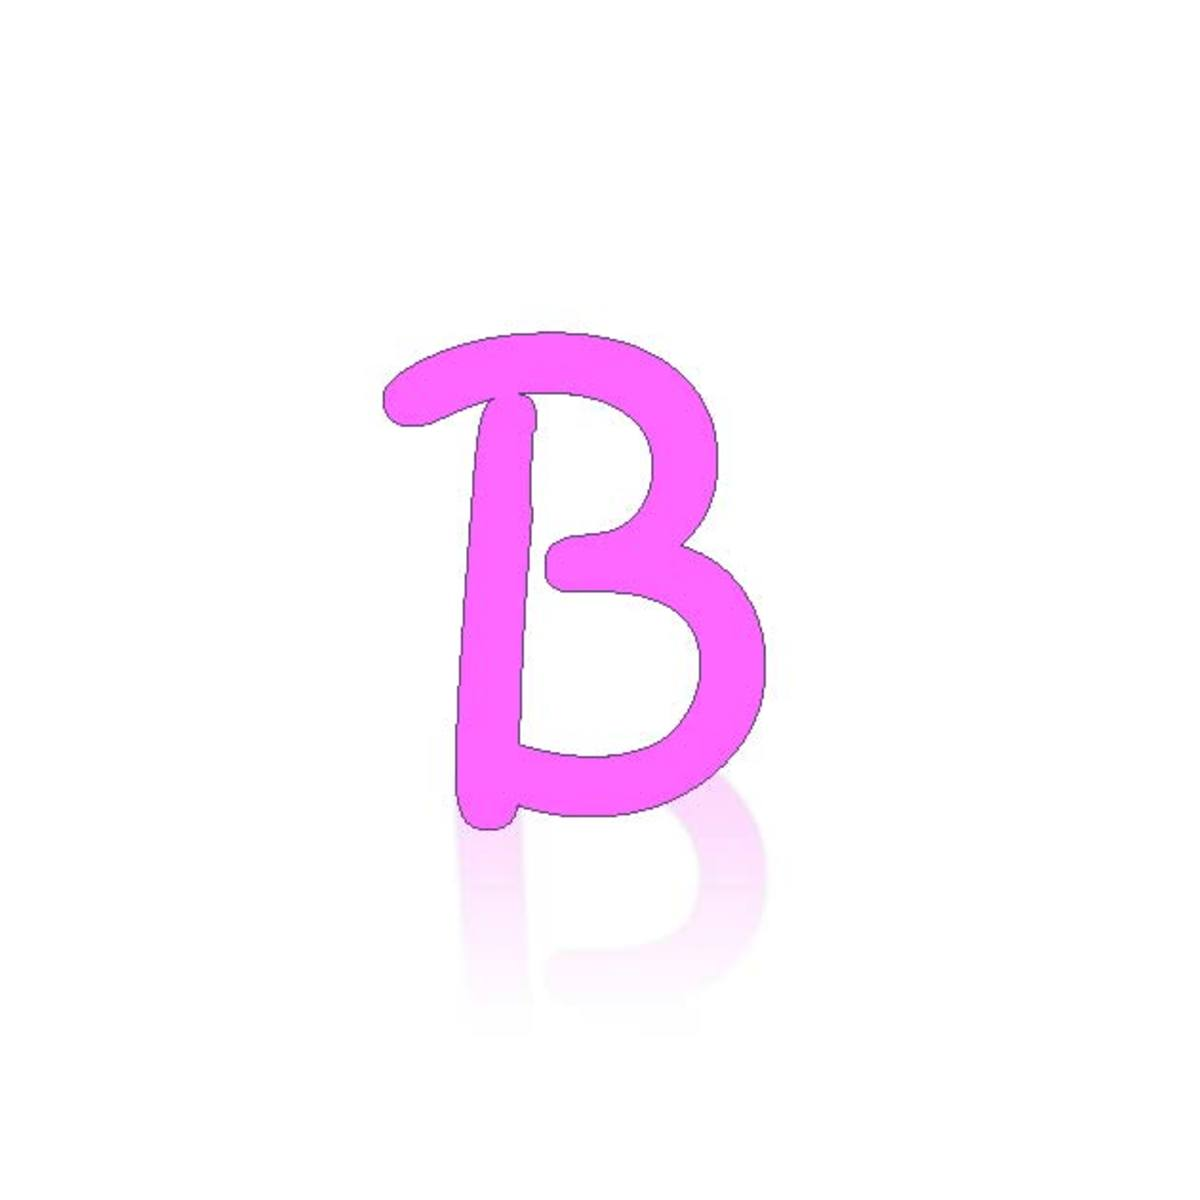 acrostic-name-poems-for-girls-names-starting-with-b